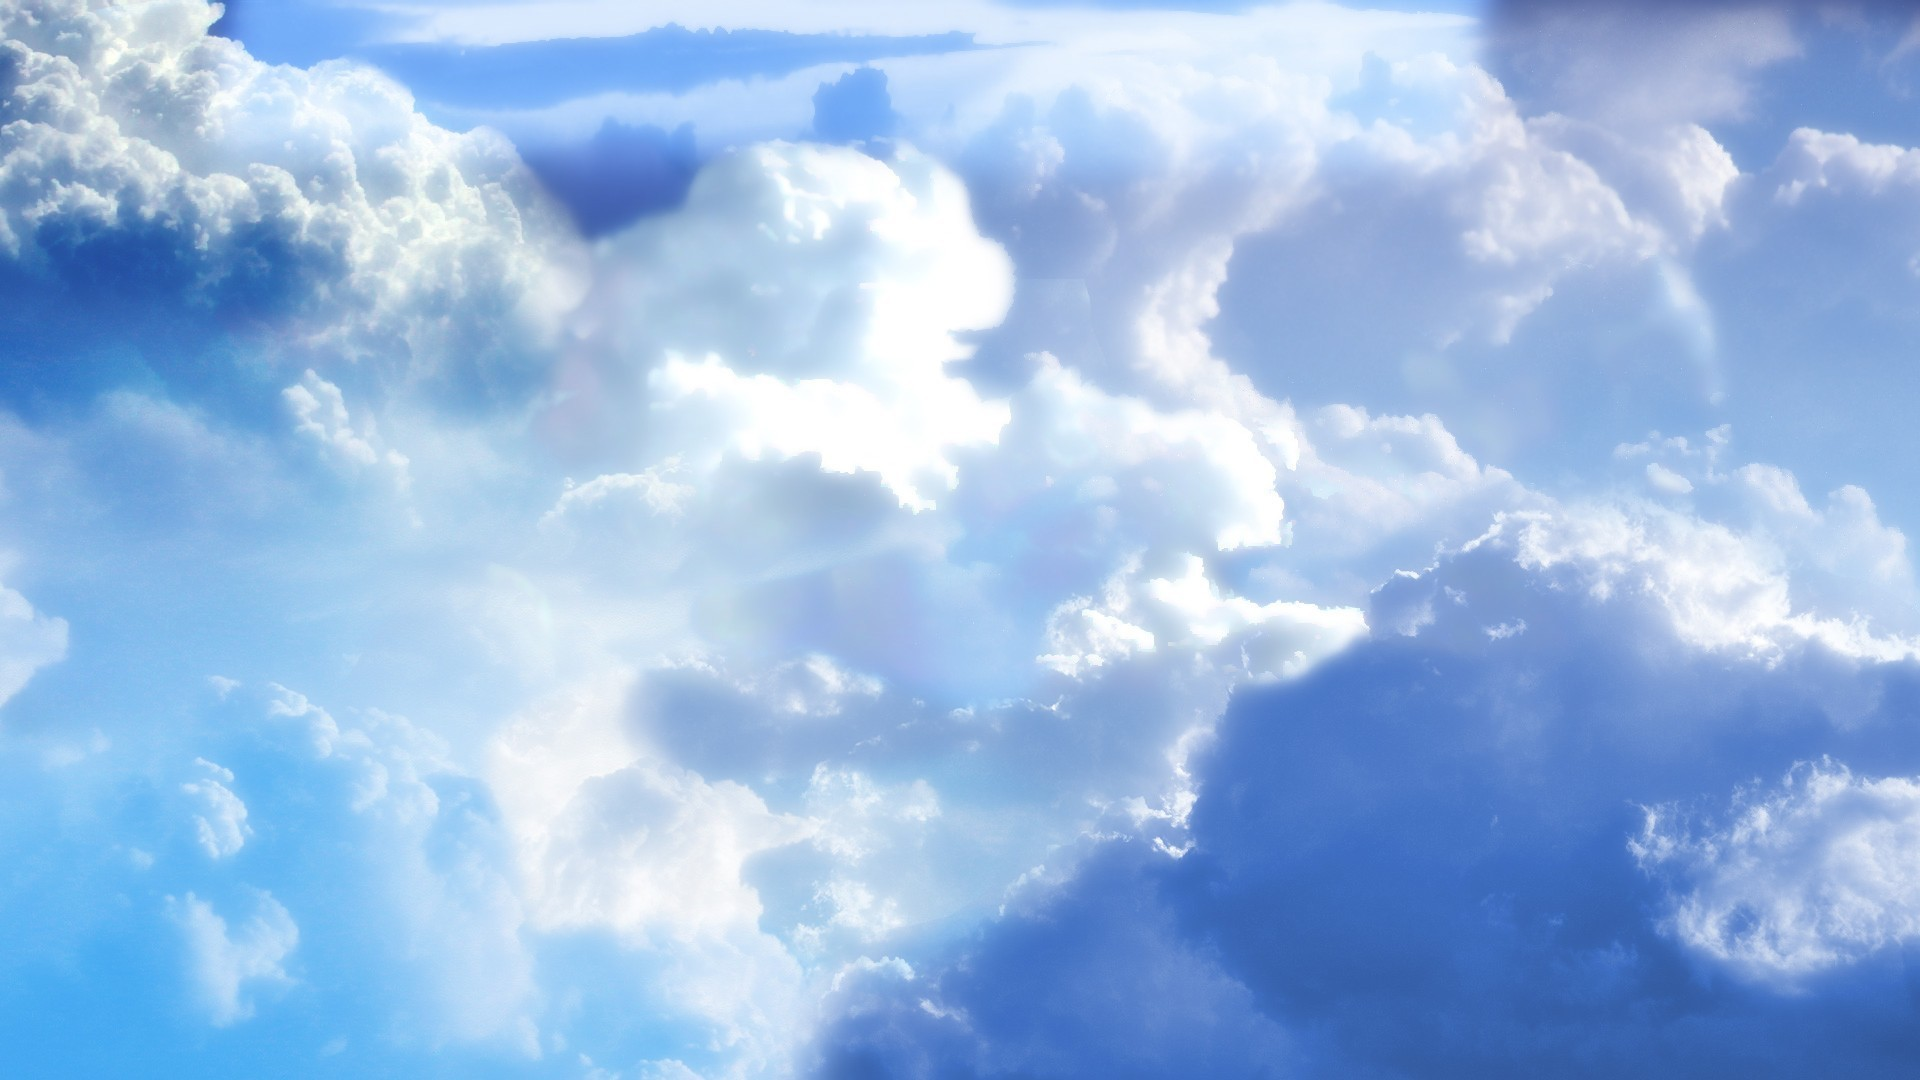 1920x1080 Download Free Cloudy Sky HD Wallpaper - Page 3 of 3 - wallpaper.wiki .